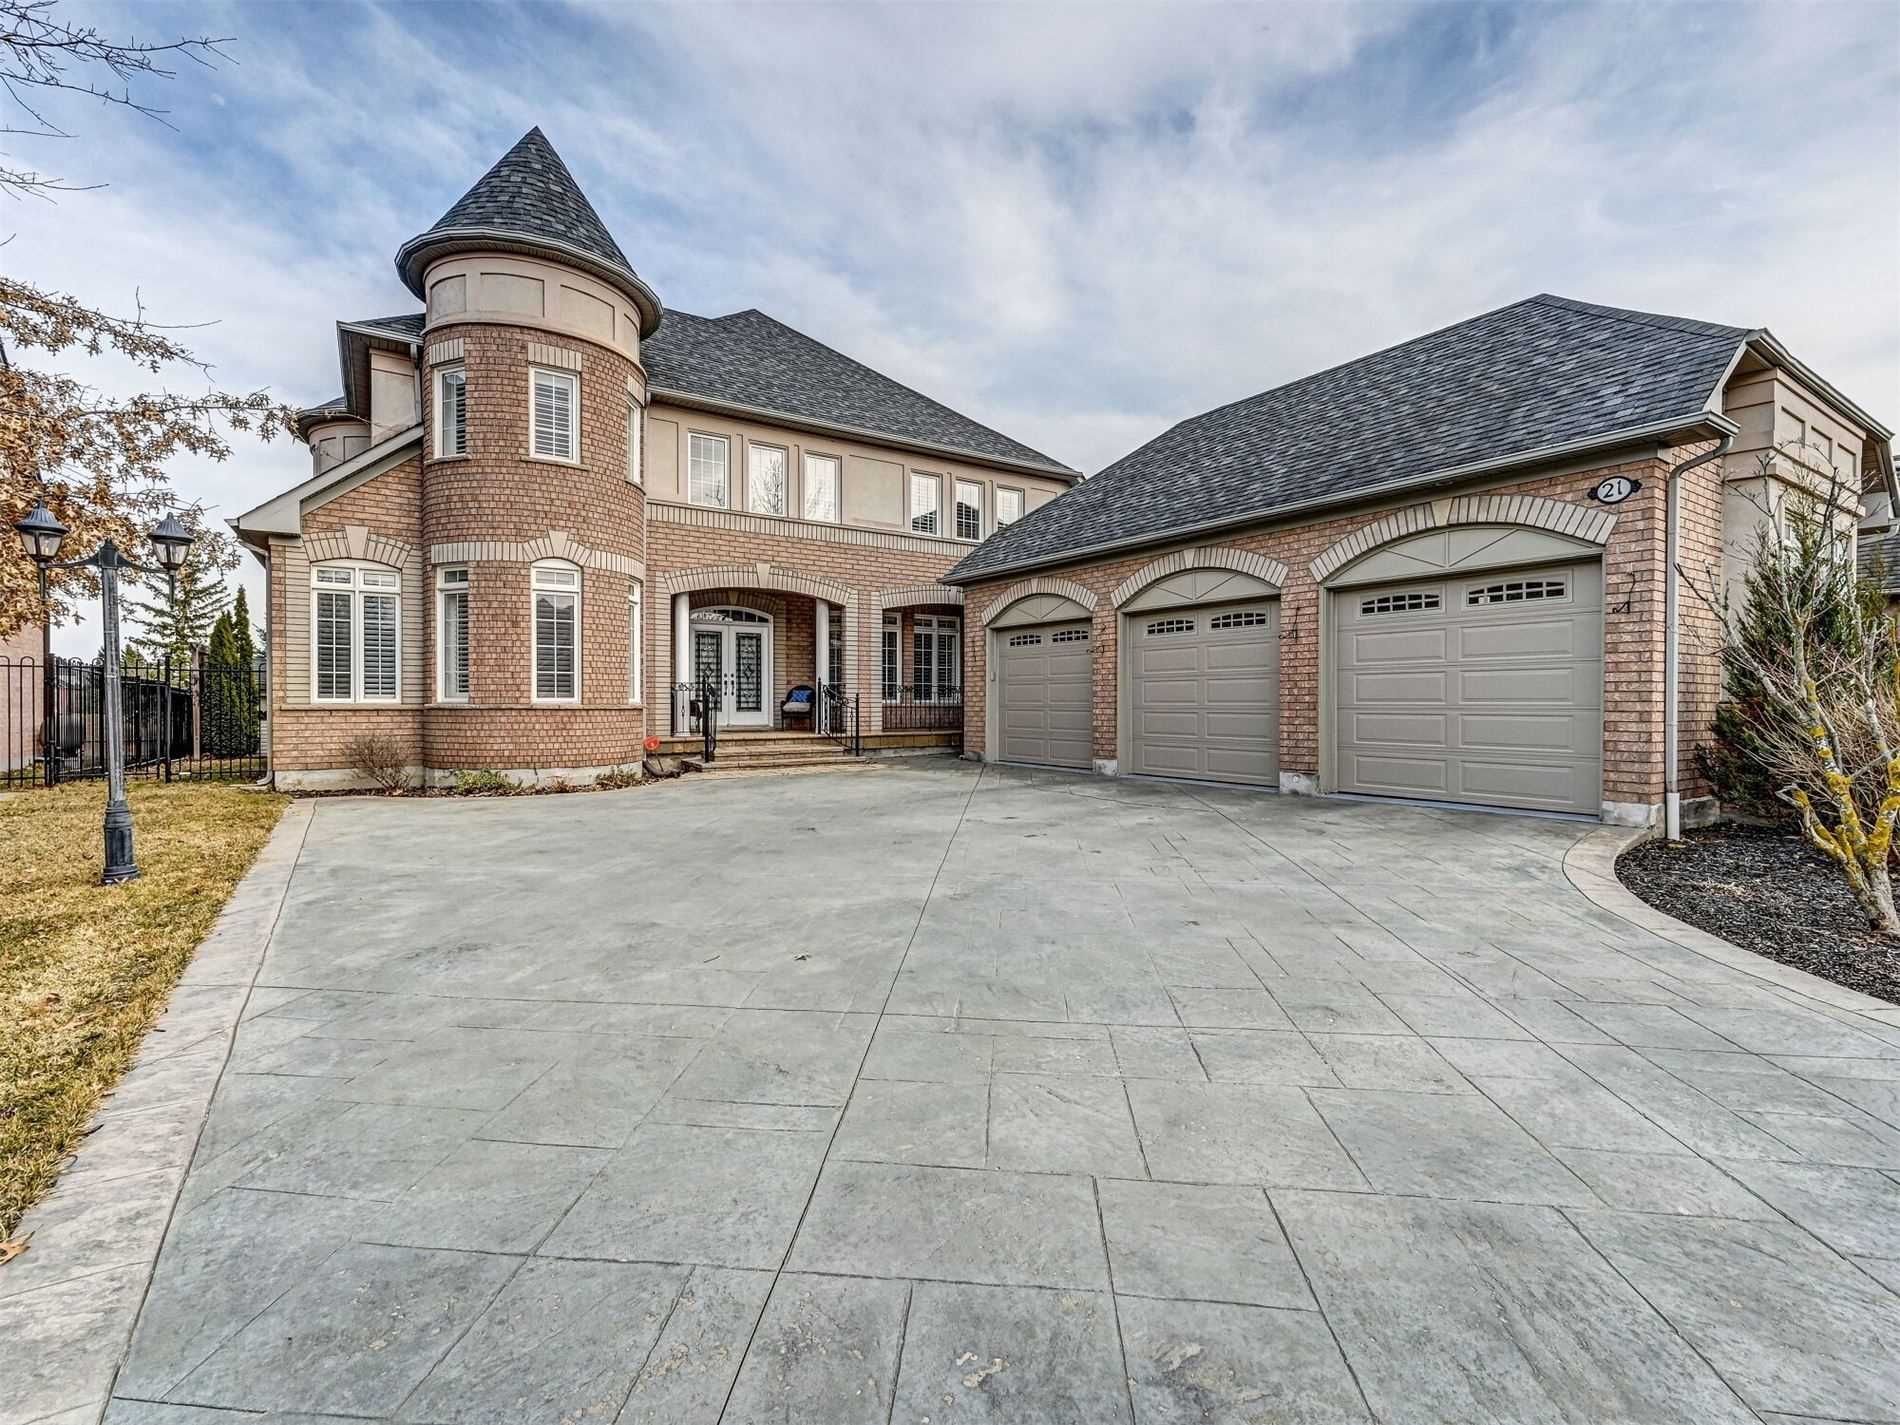 Main Photo: 21 Links Lane in Brampton: Credit Valley Freehold for sale : MLS®# W5166589